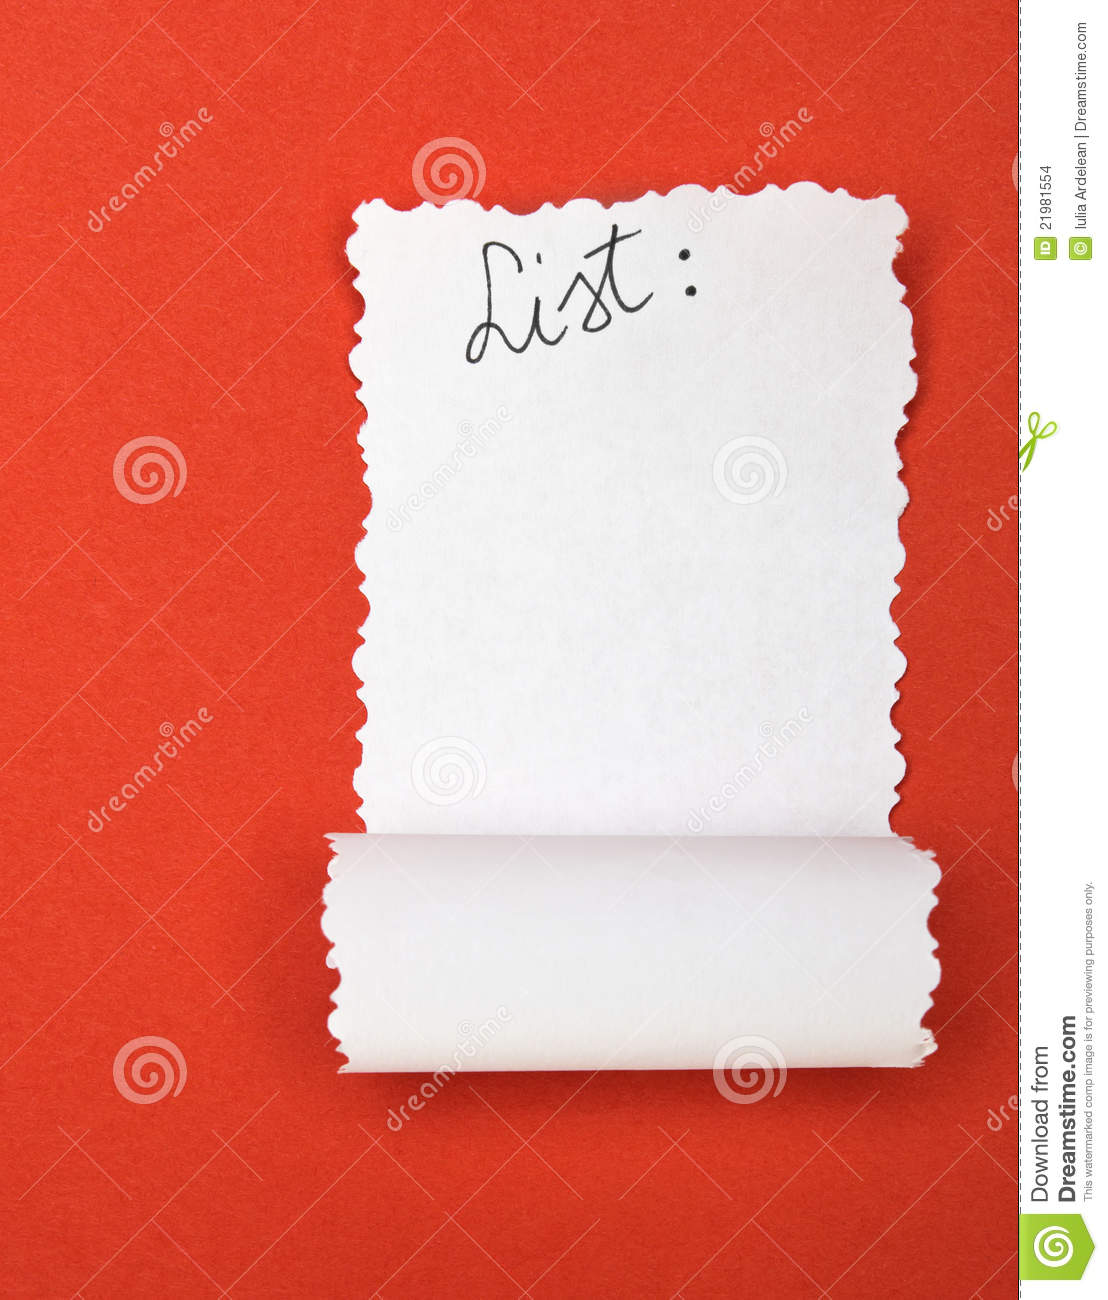 empty list stock photo  image of symbol  ripped  page